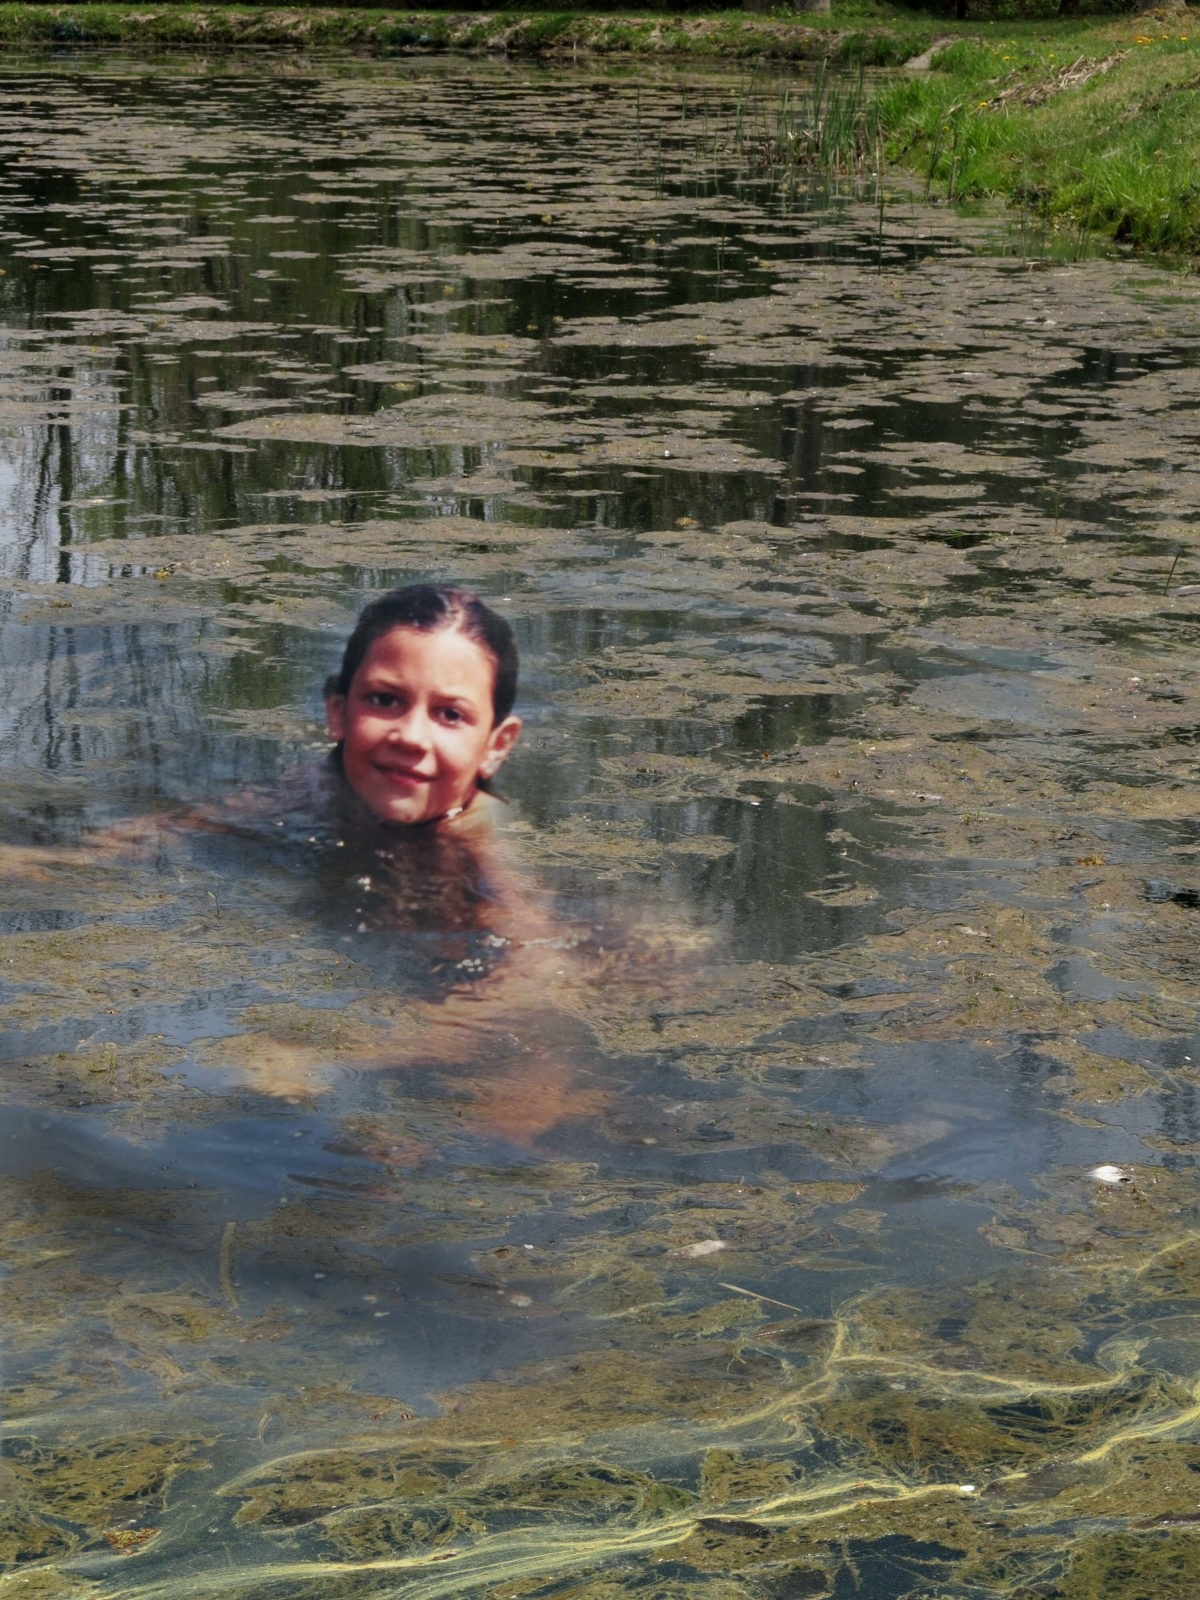 Robin Botie in Ithaca, New York Photoshops daughter, Marika Warden, swimming in pond filled with algae.